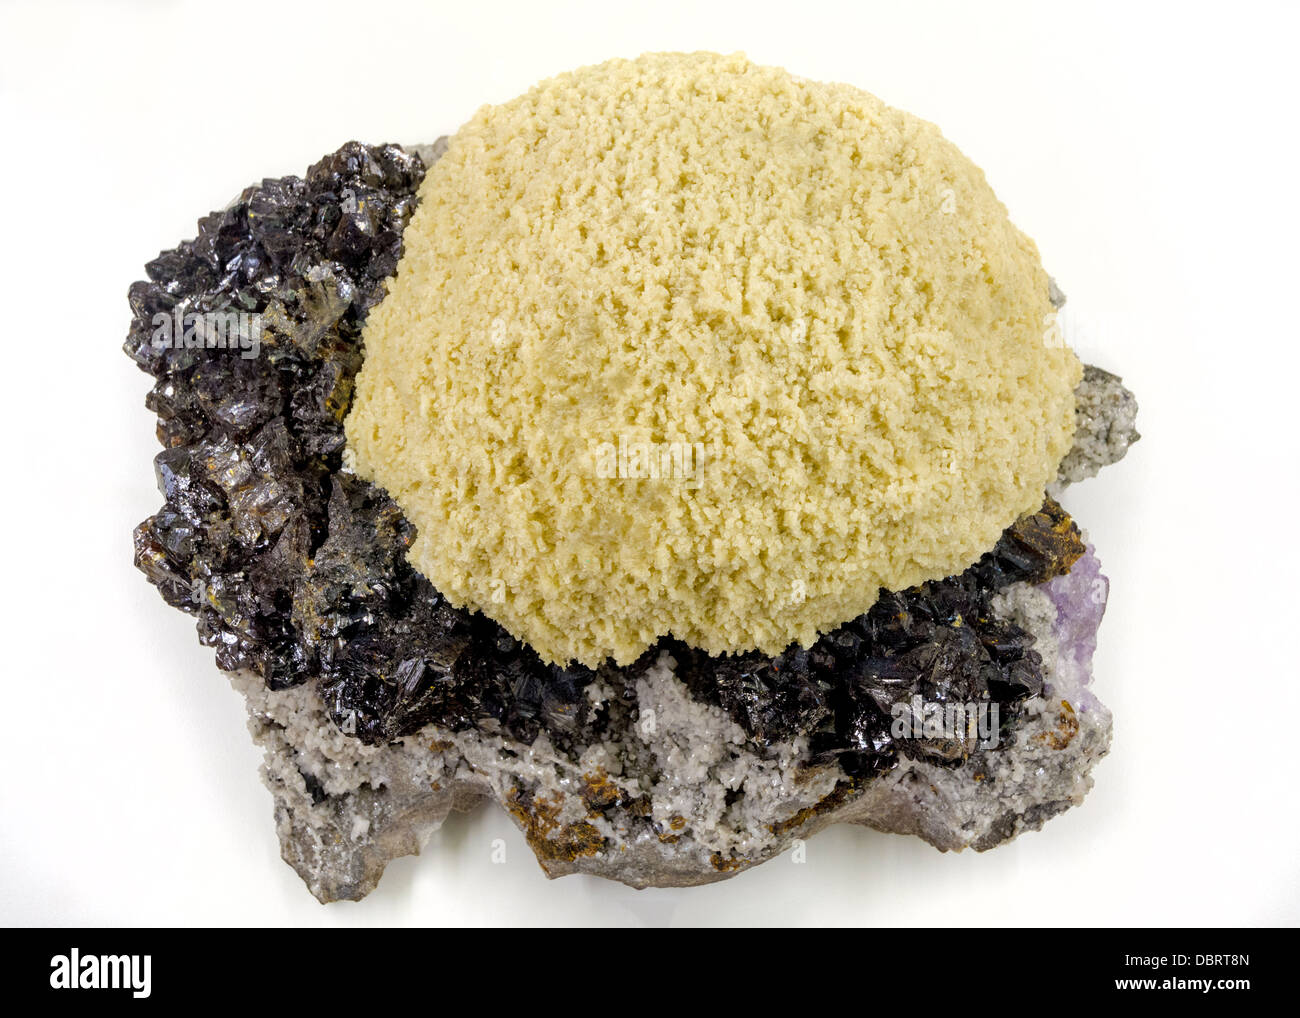 Beautiful mineral with crystals on display - Stock Image